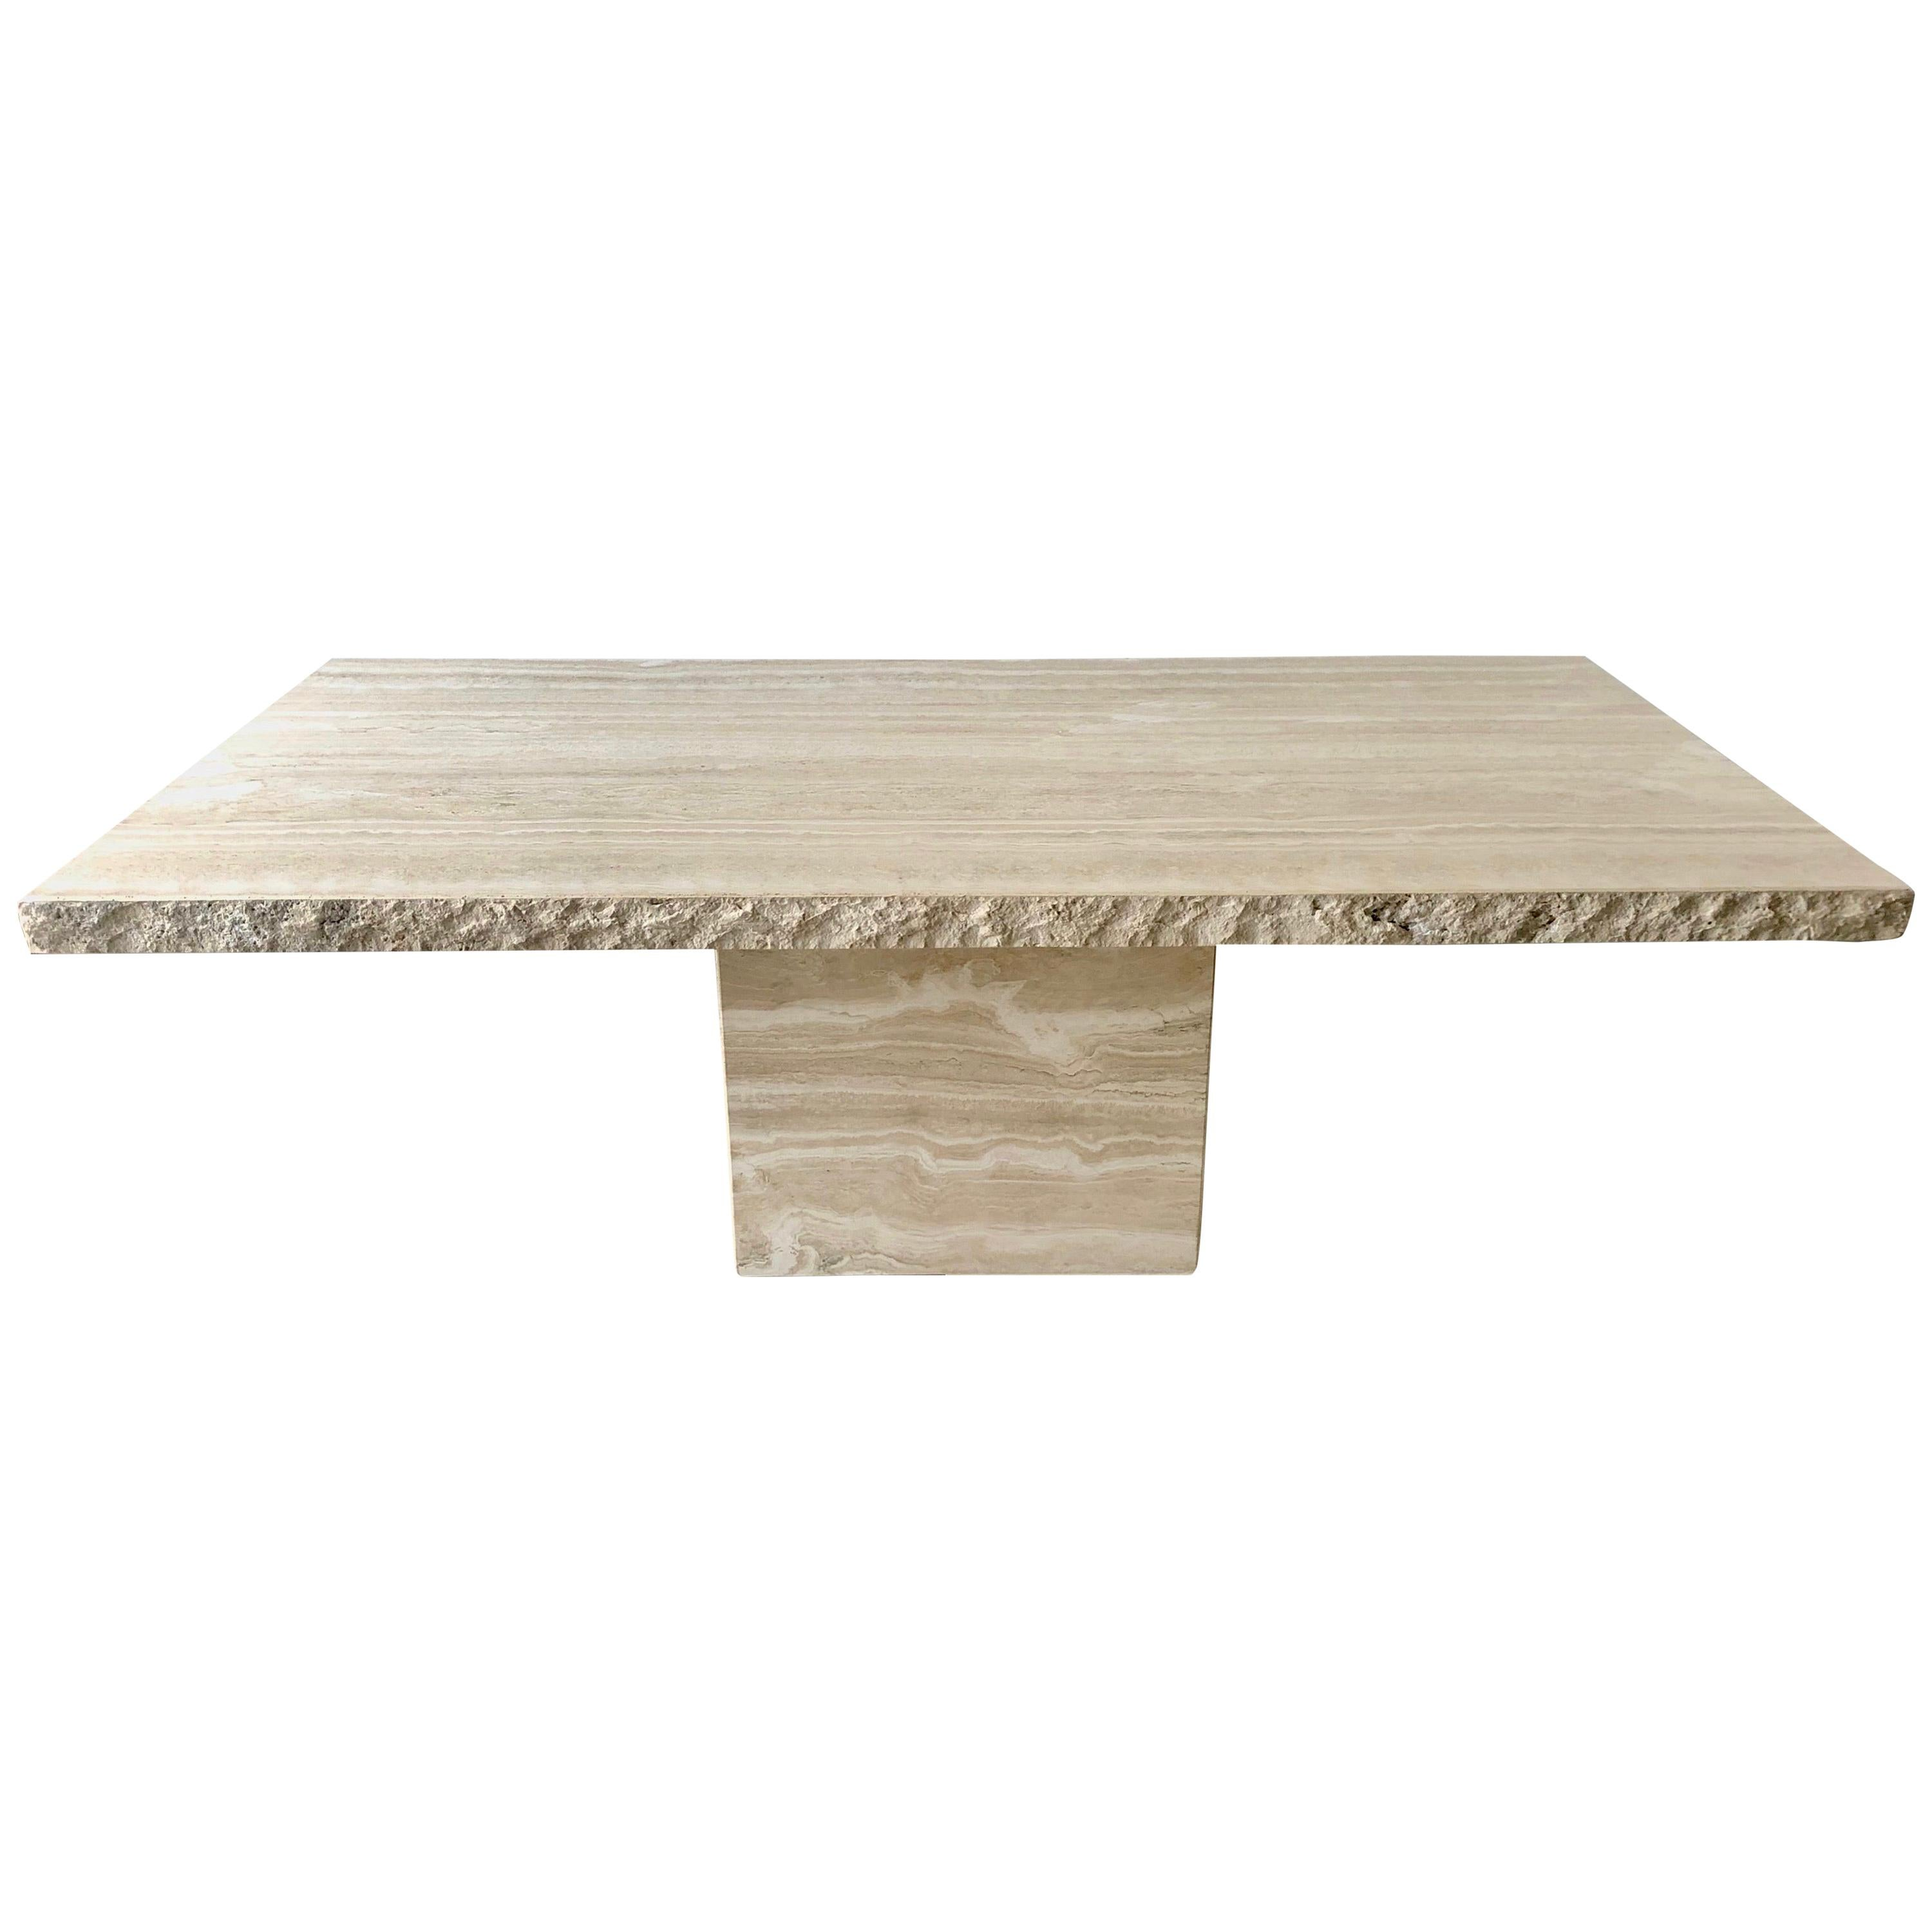 1980s Travertine Dining Table